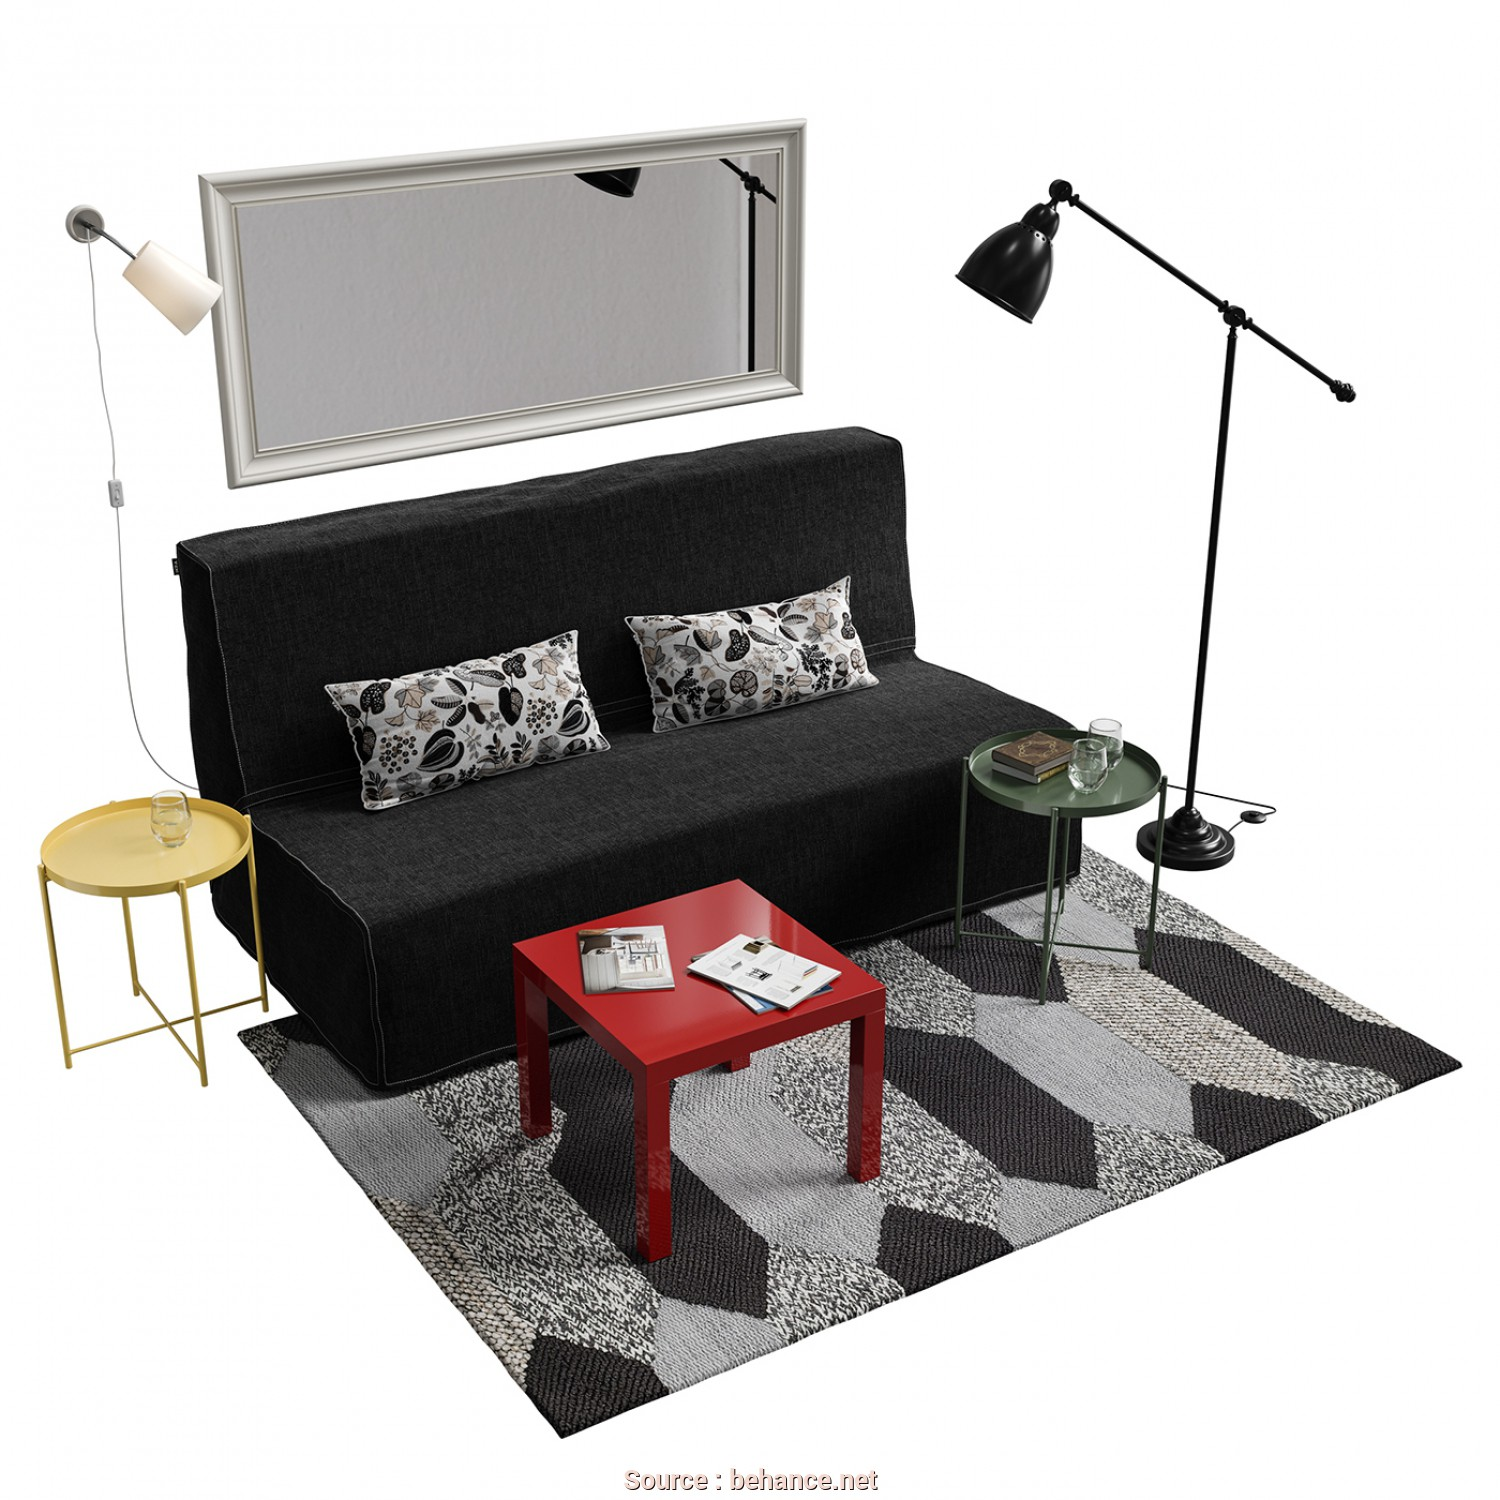 Beddinge Ikea Italia, Originale Thank, For Watching, Welcome In To My Blog Or Instagram